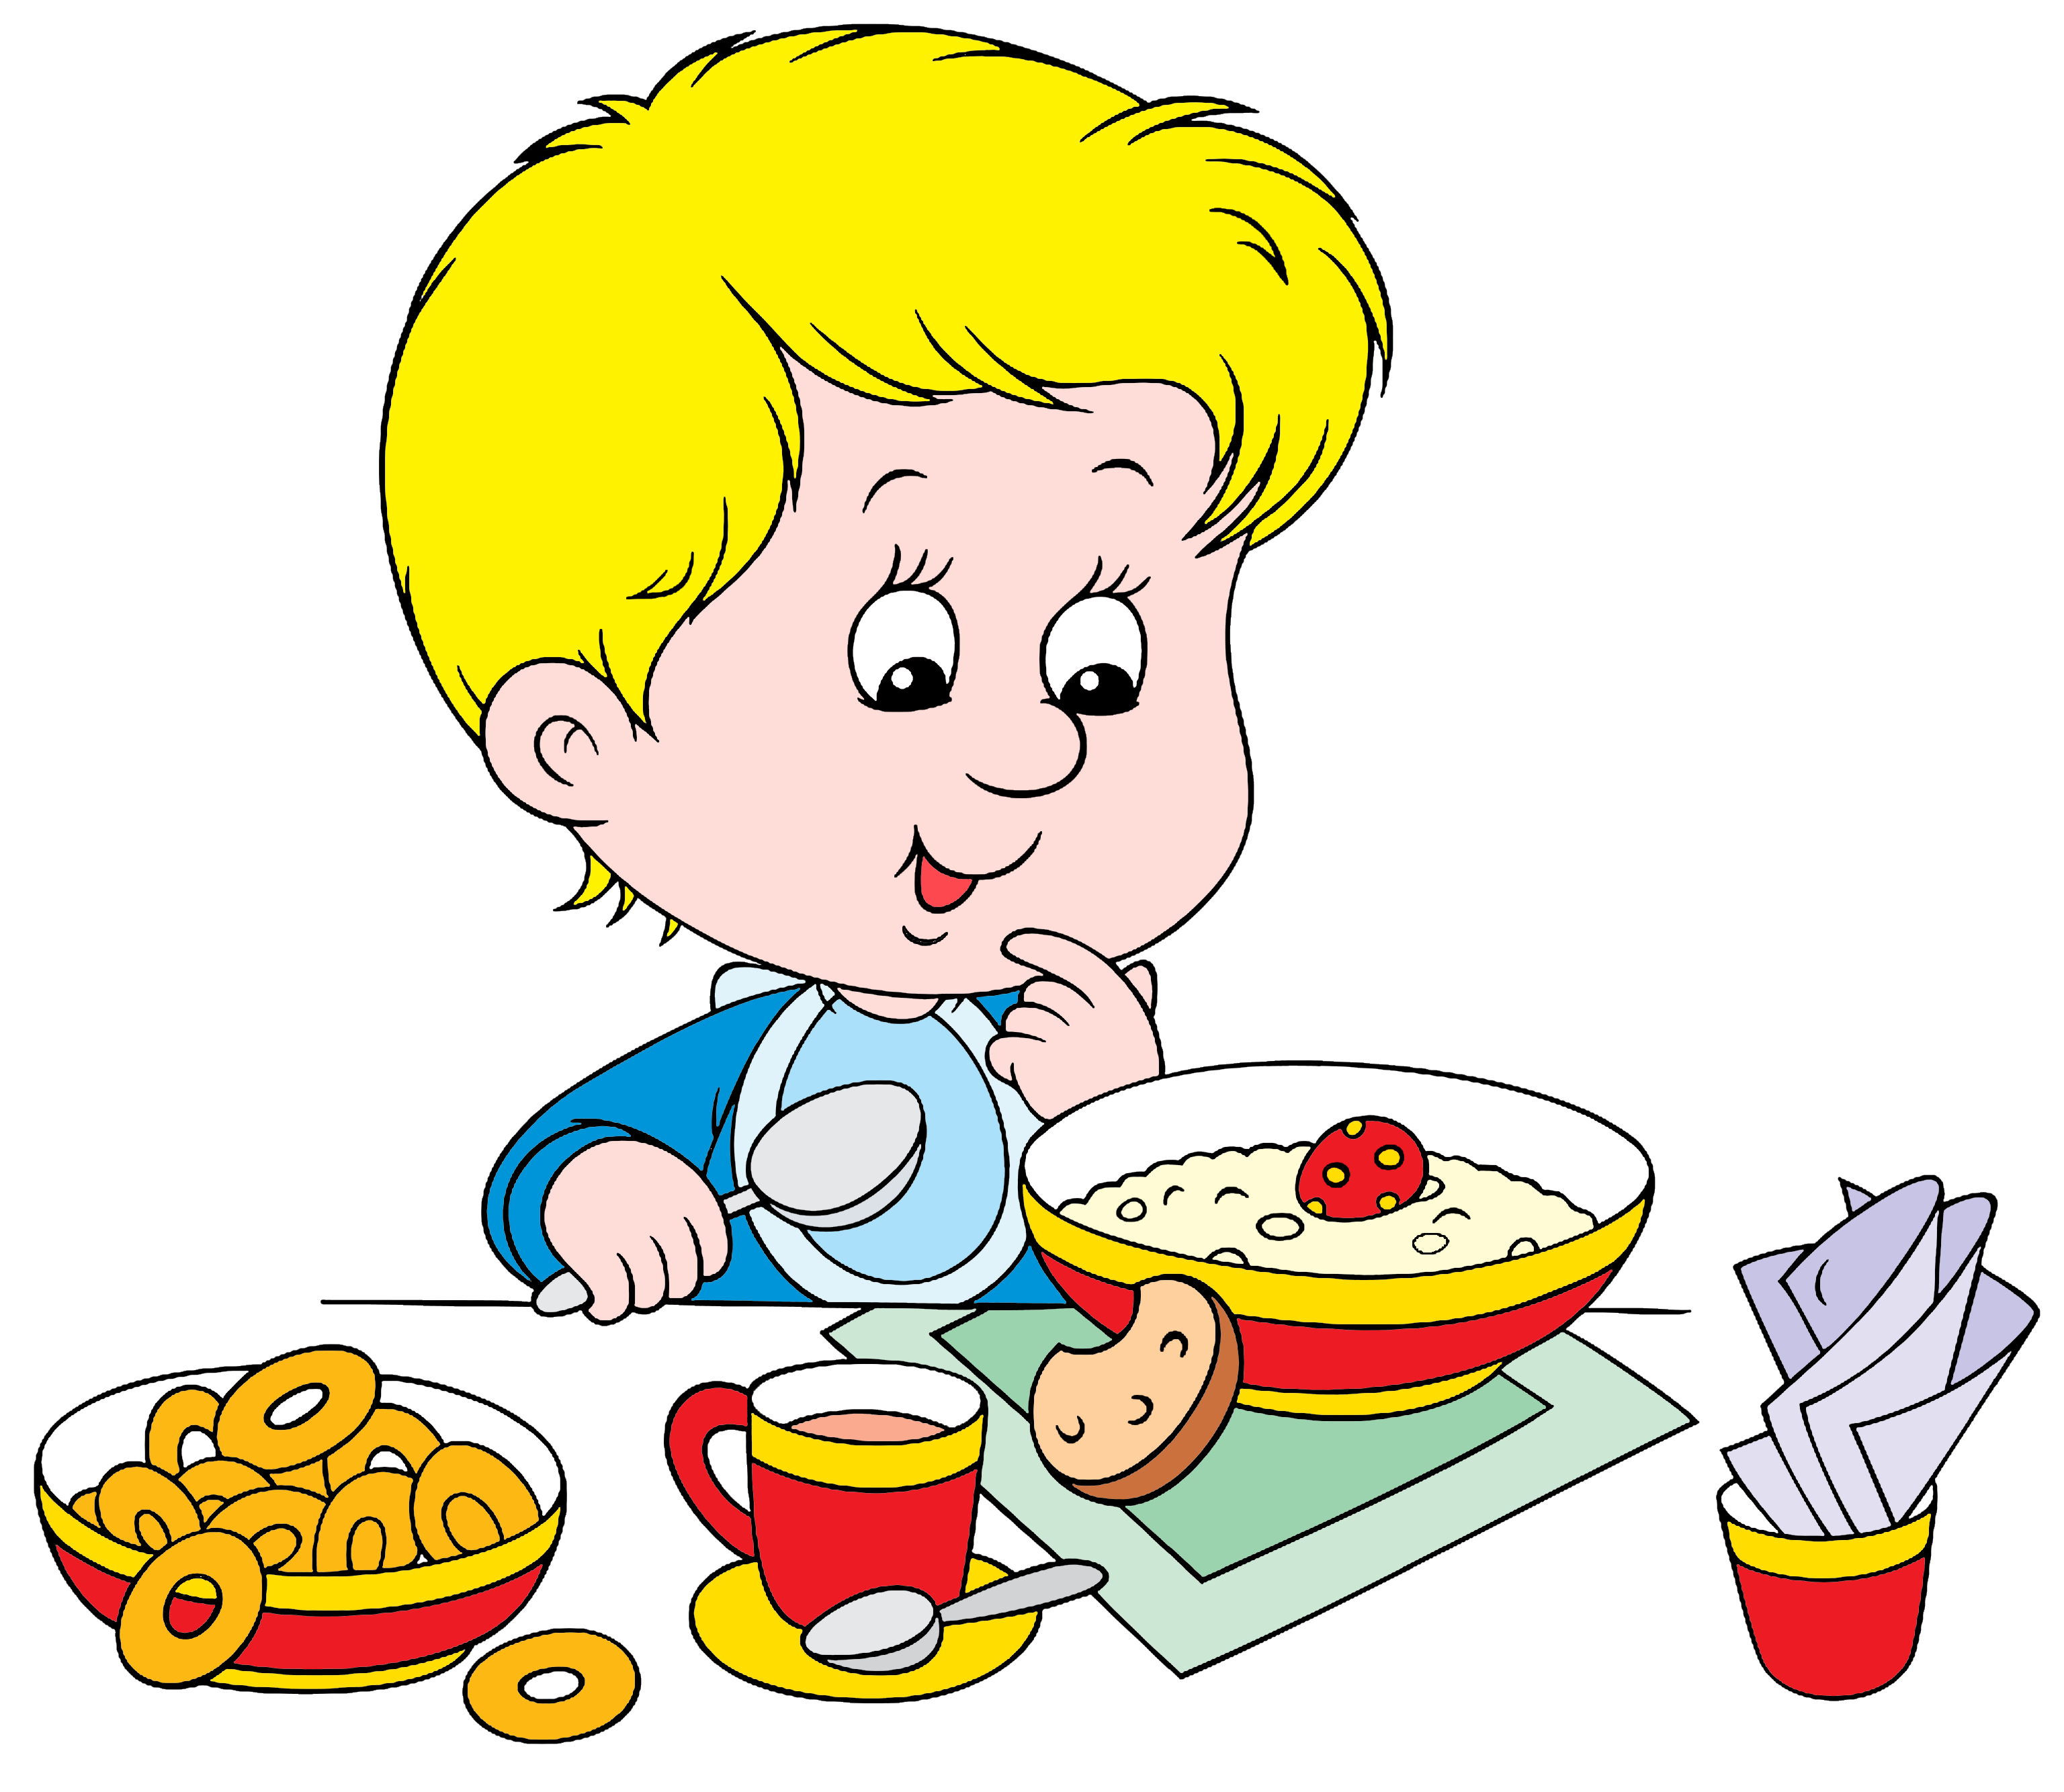 Boy eating breakfast clipart picture freeuse stock boy eating breakfast clipart - Google Търсене | Klipart | Health ... picture freeuse stock